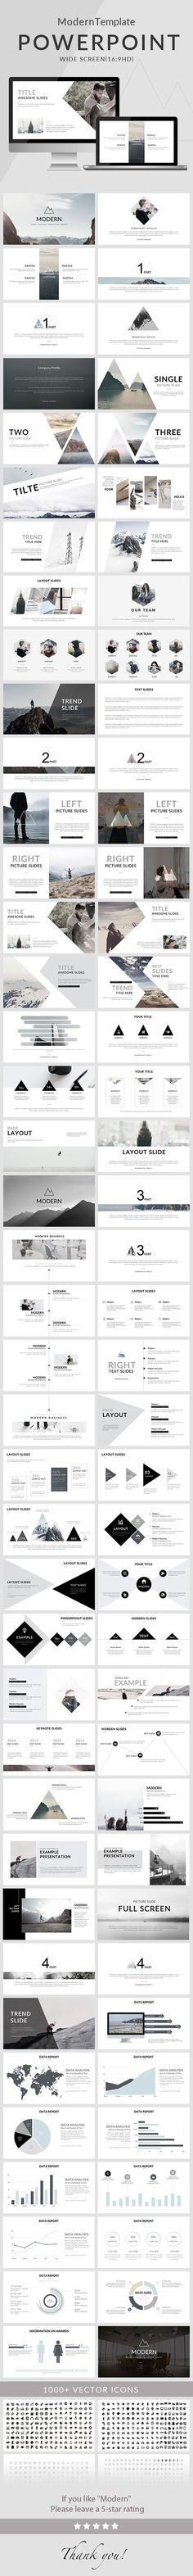 Business infographic : Modern  Powerpoint Template  Creative PowerPoint Templates